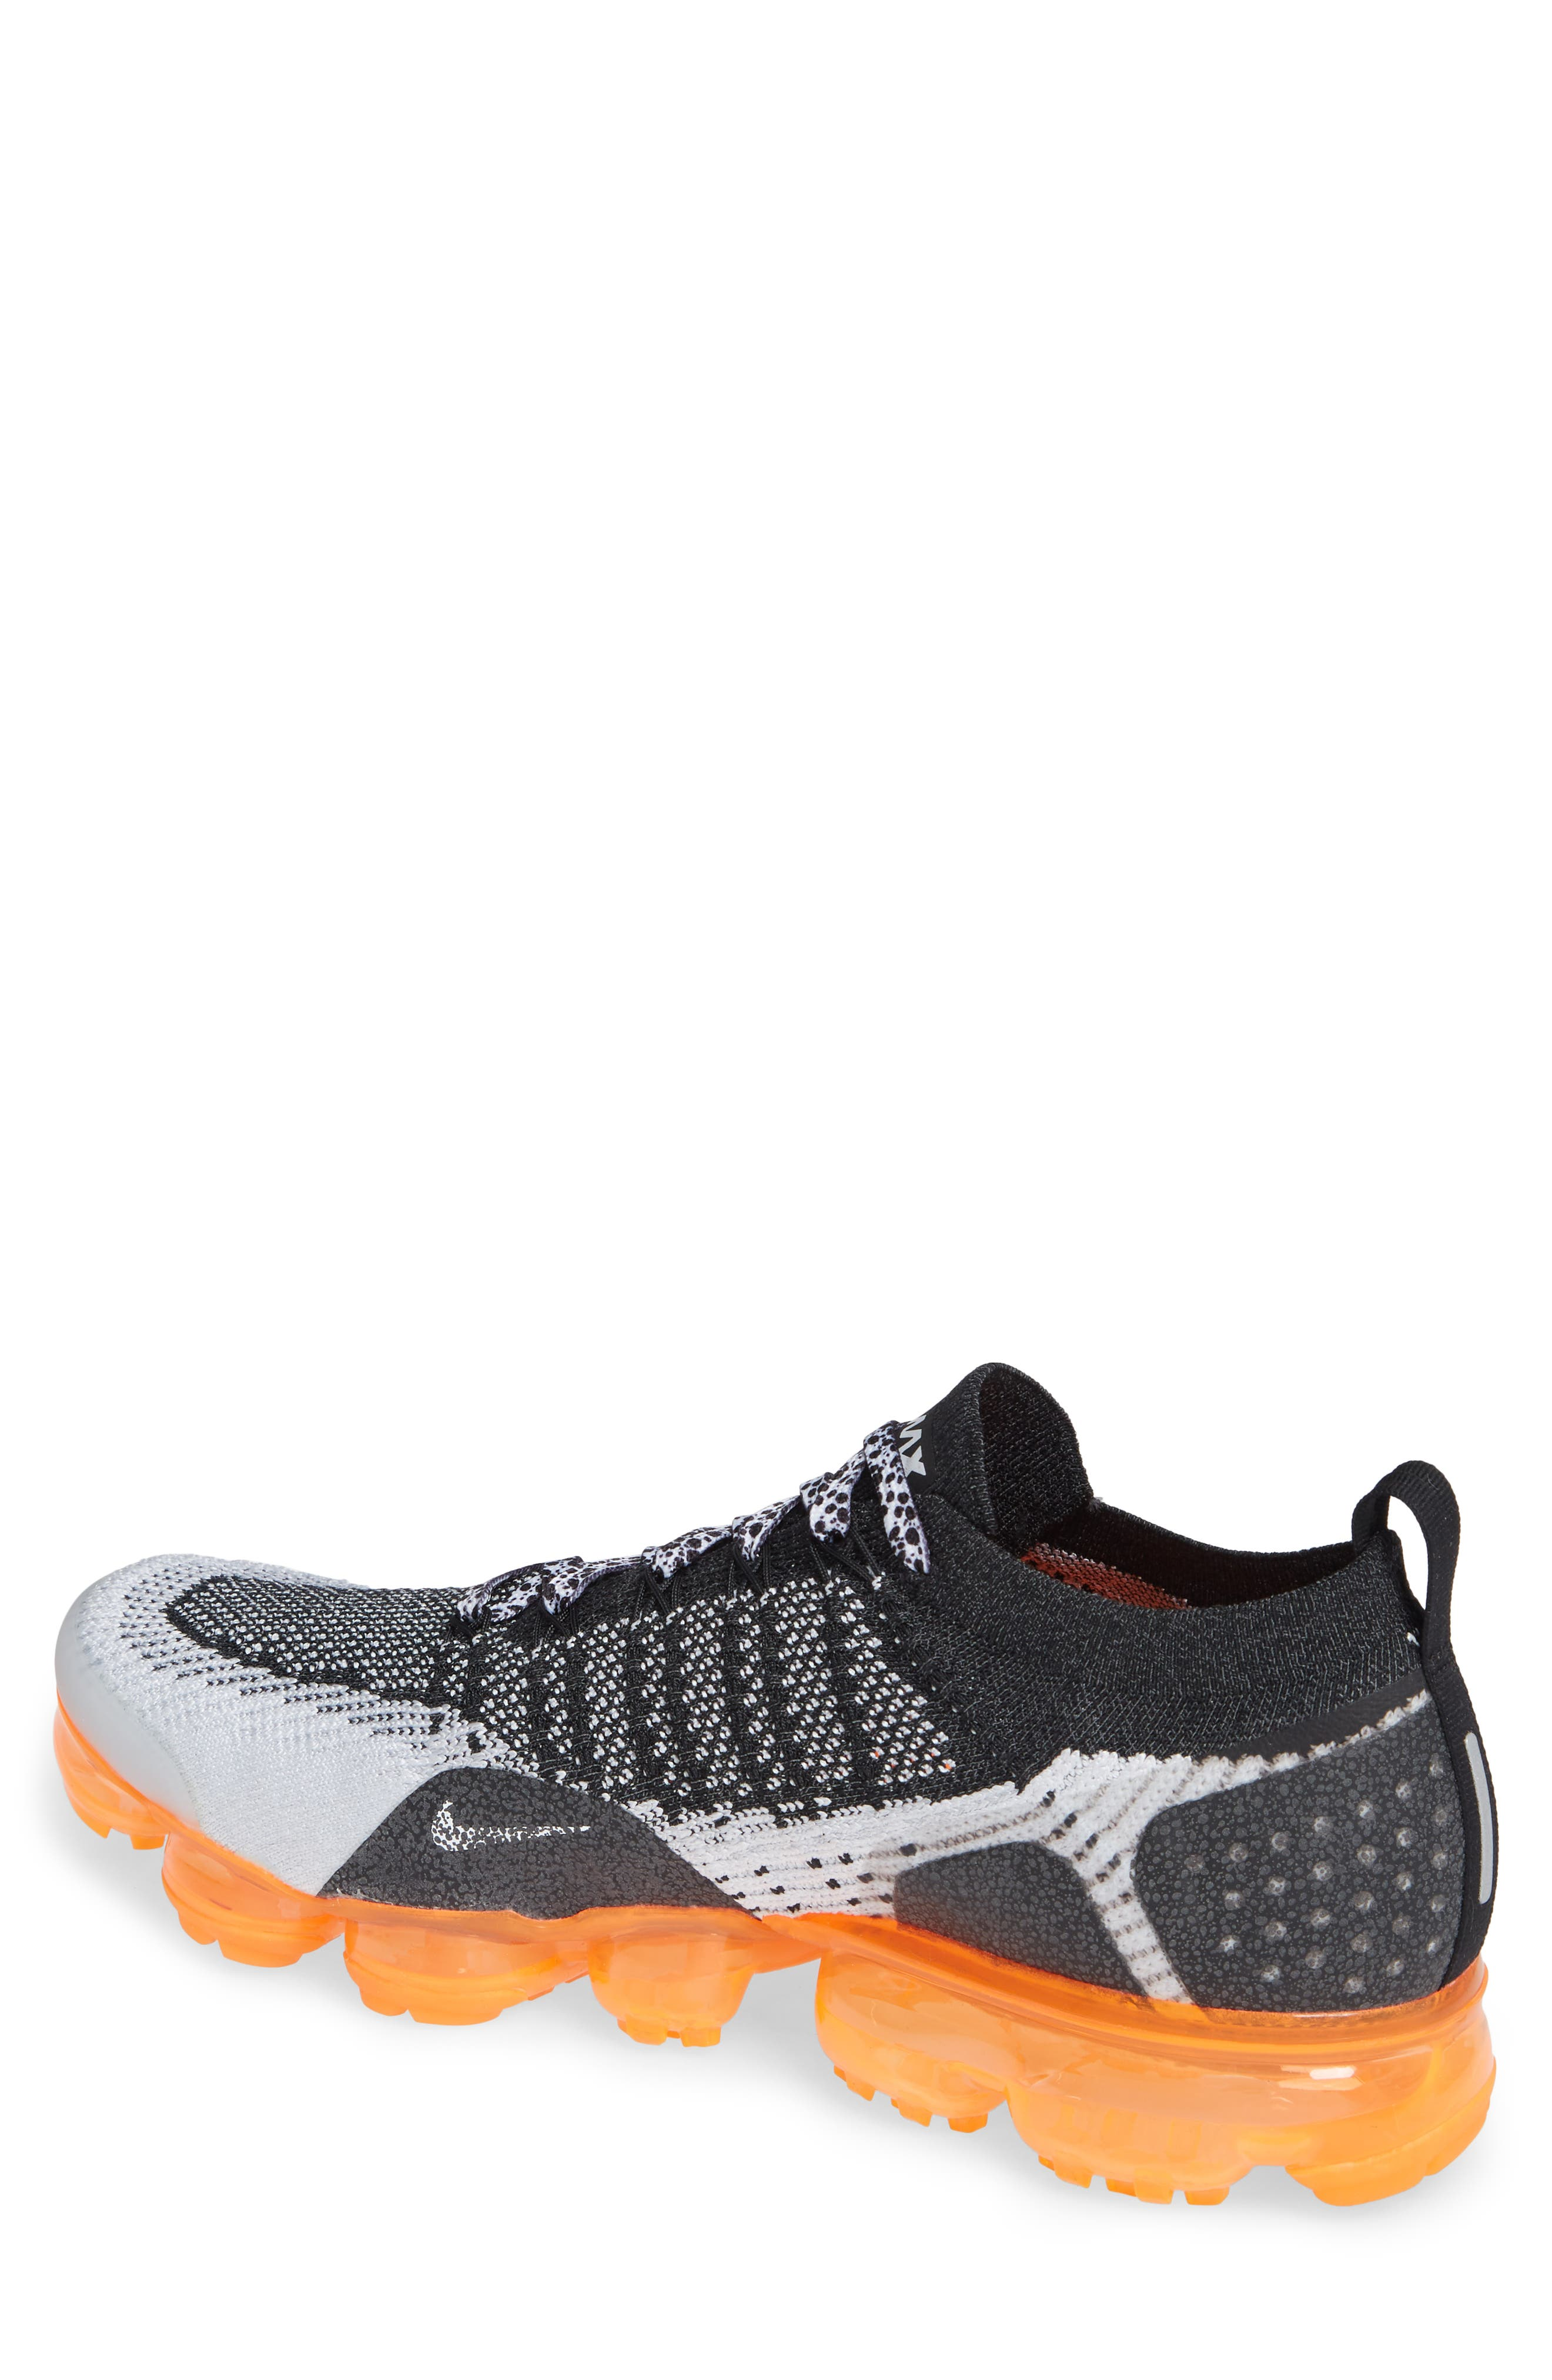 NIKE, Air VaporMax Flyknit 2 Running Shoe, Alternate thumbnail 2, color, WHITE/ BLACK/ TOTAL ORANGE